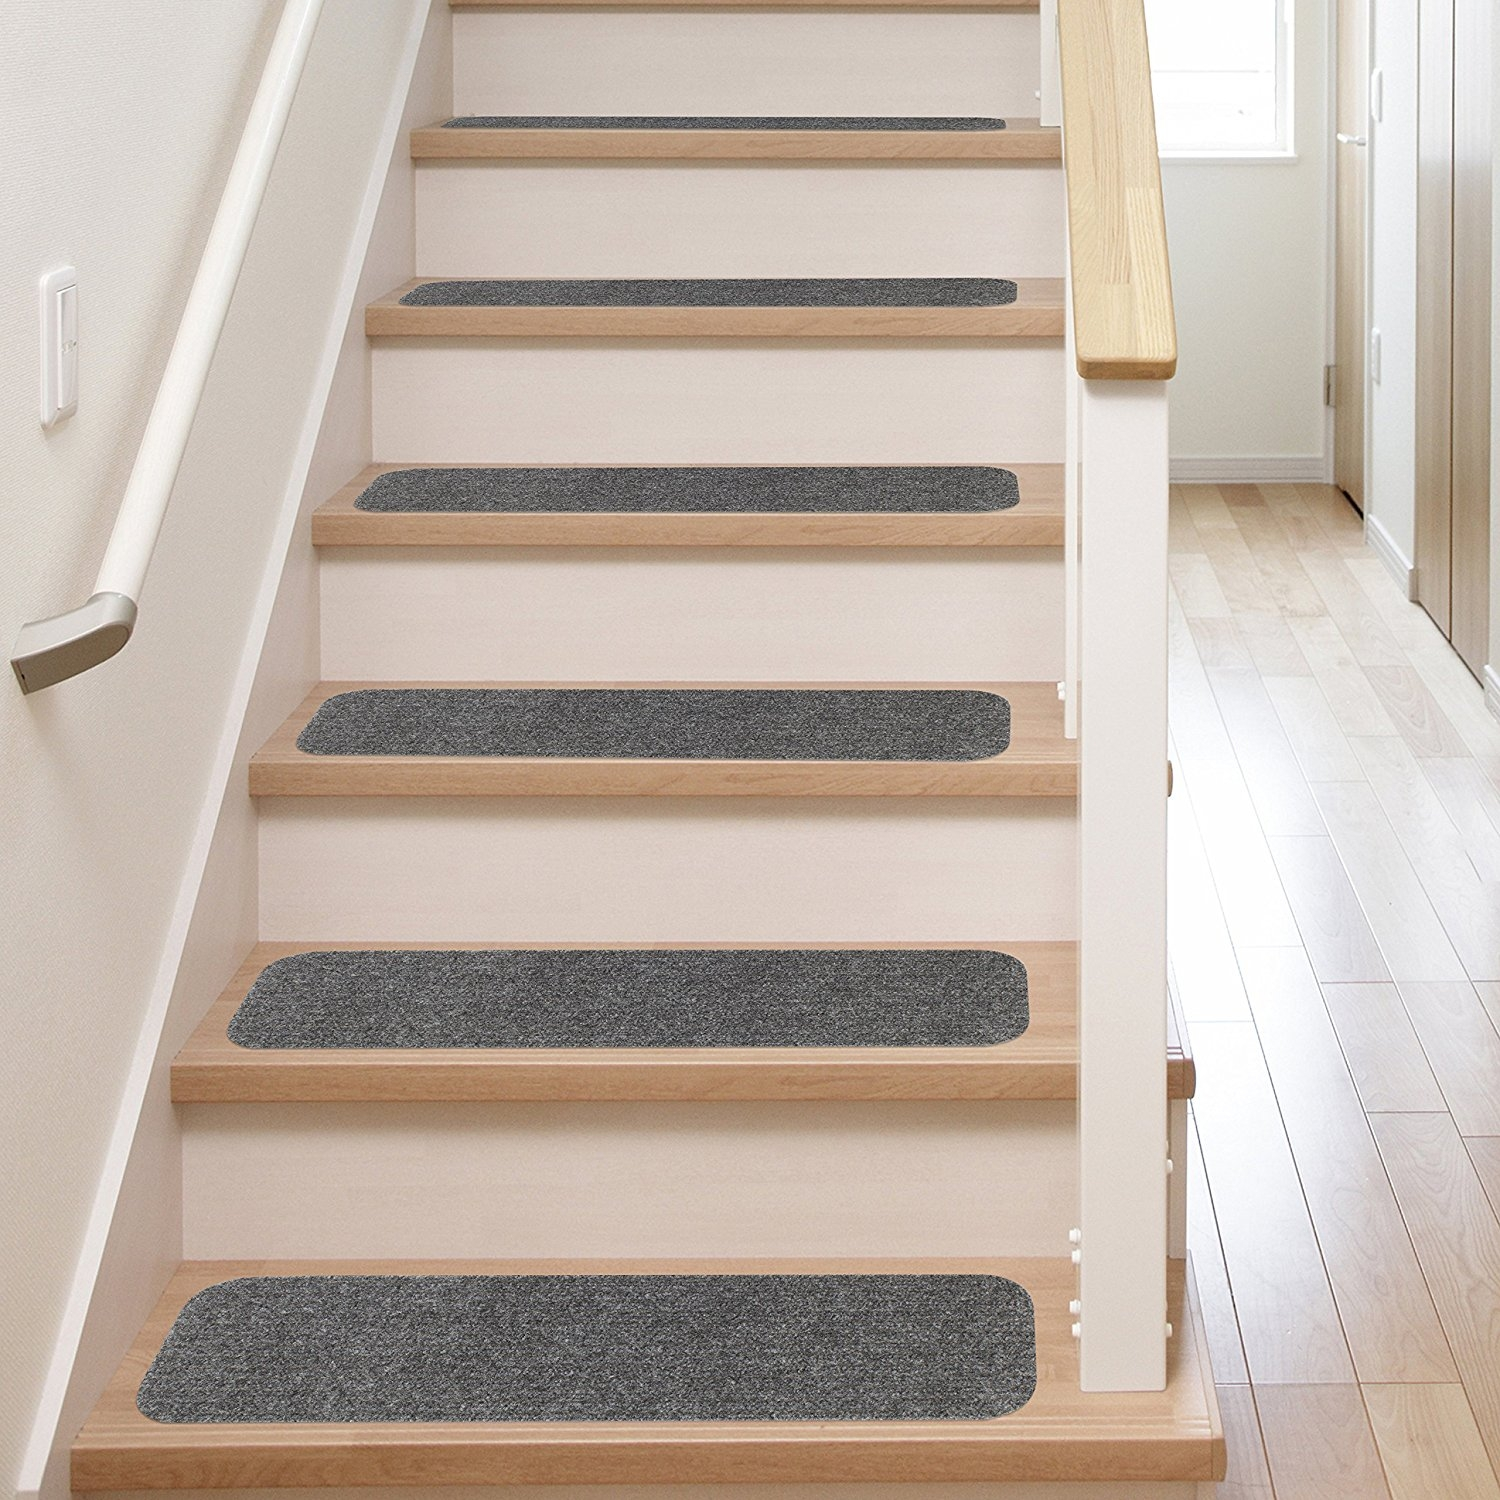 Amazon Best Sellers Best Staircase Step Treads Pertaining To Stair Protectors Wooden Stairs (Image 1 of 15)